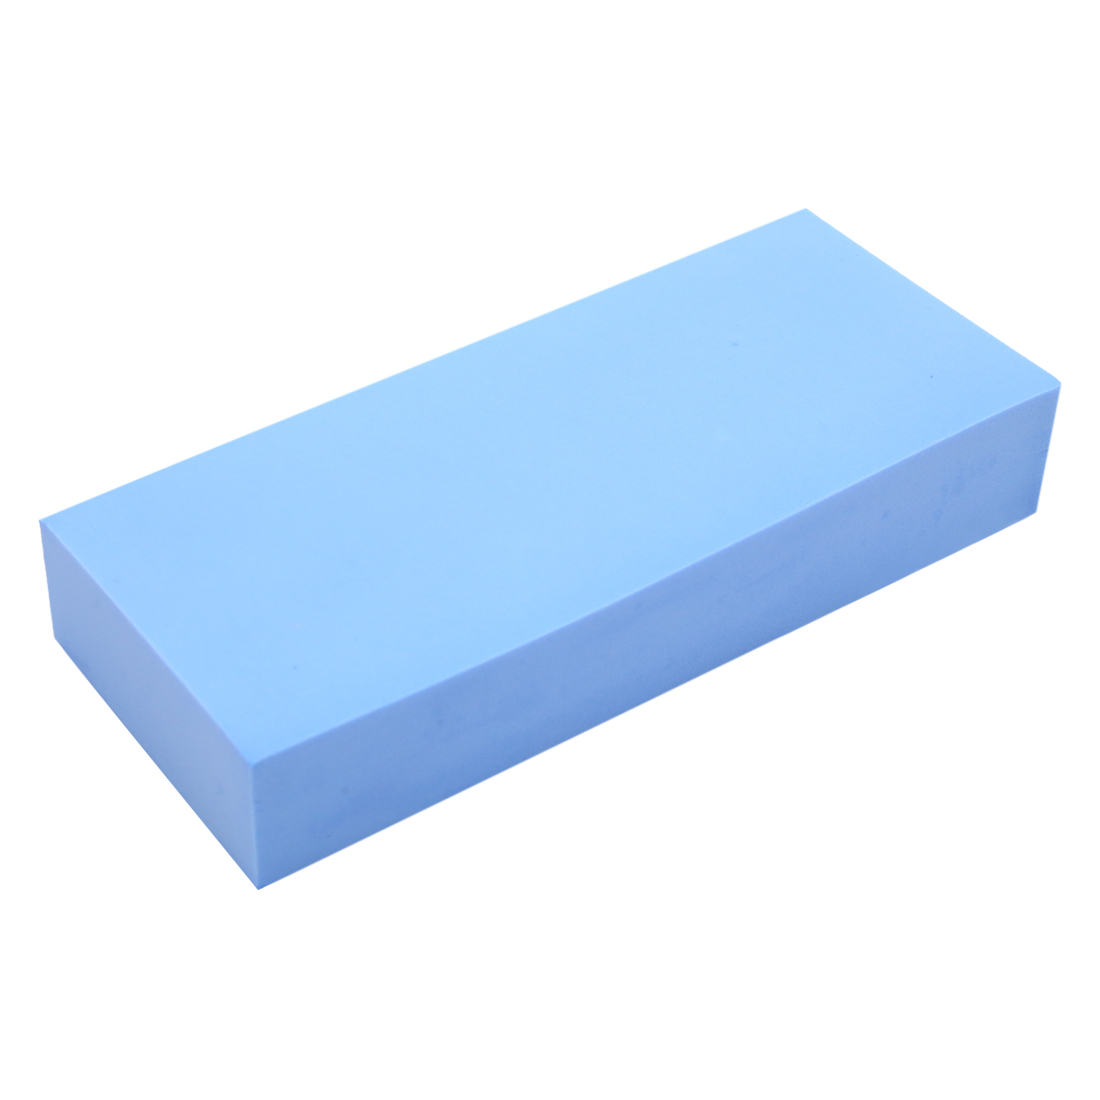 Vehicle Car Cleaning Tool PVA Suction Sponge Block Pad Blue 16.5cm x 7cm x 3.5cm